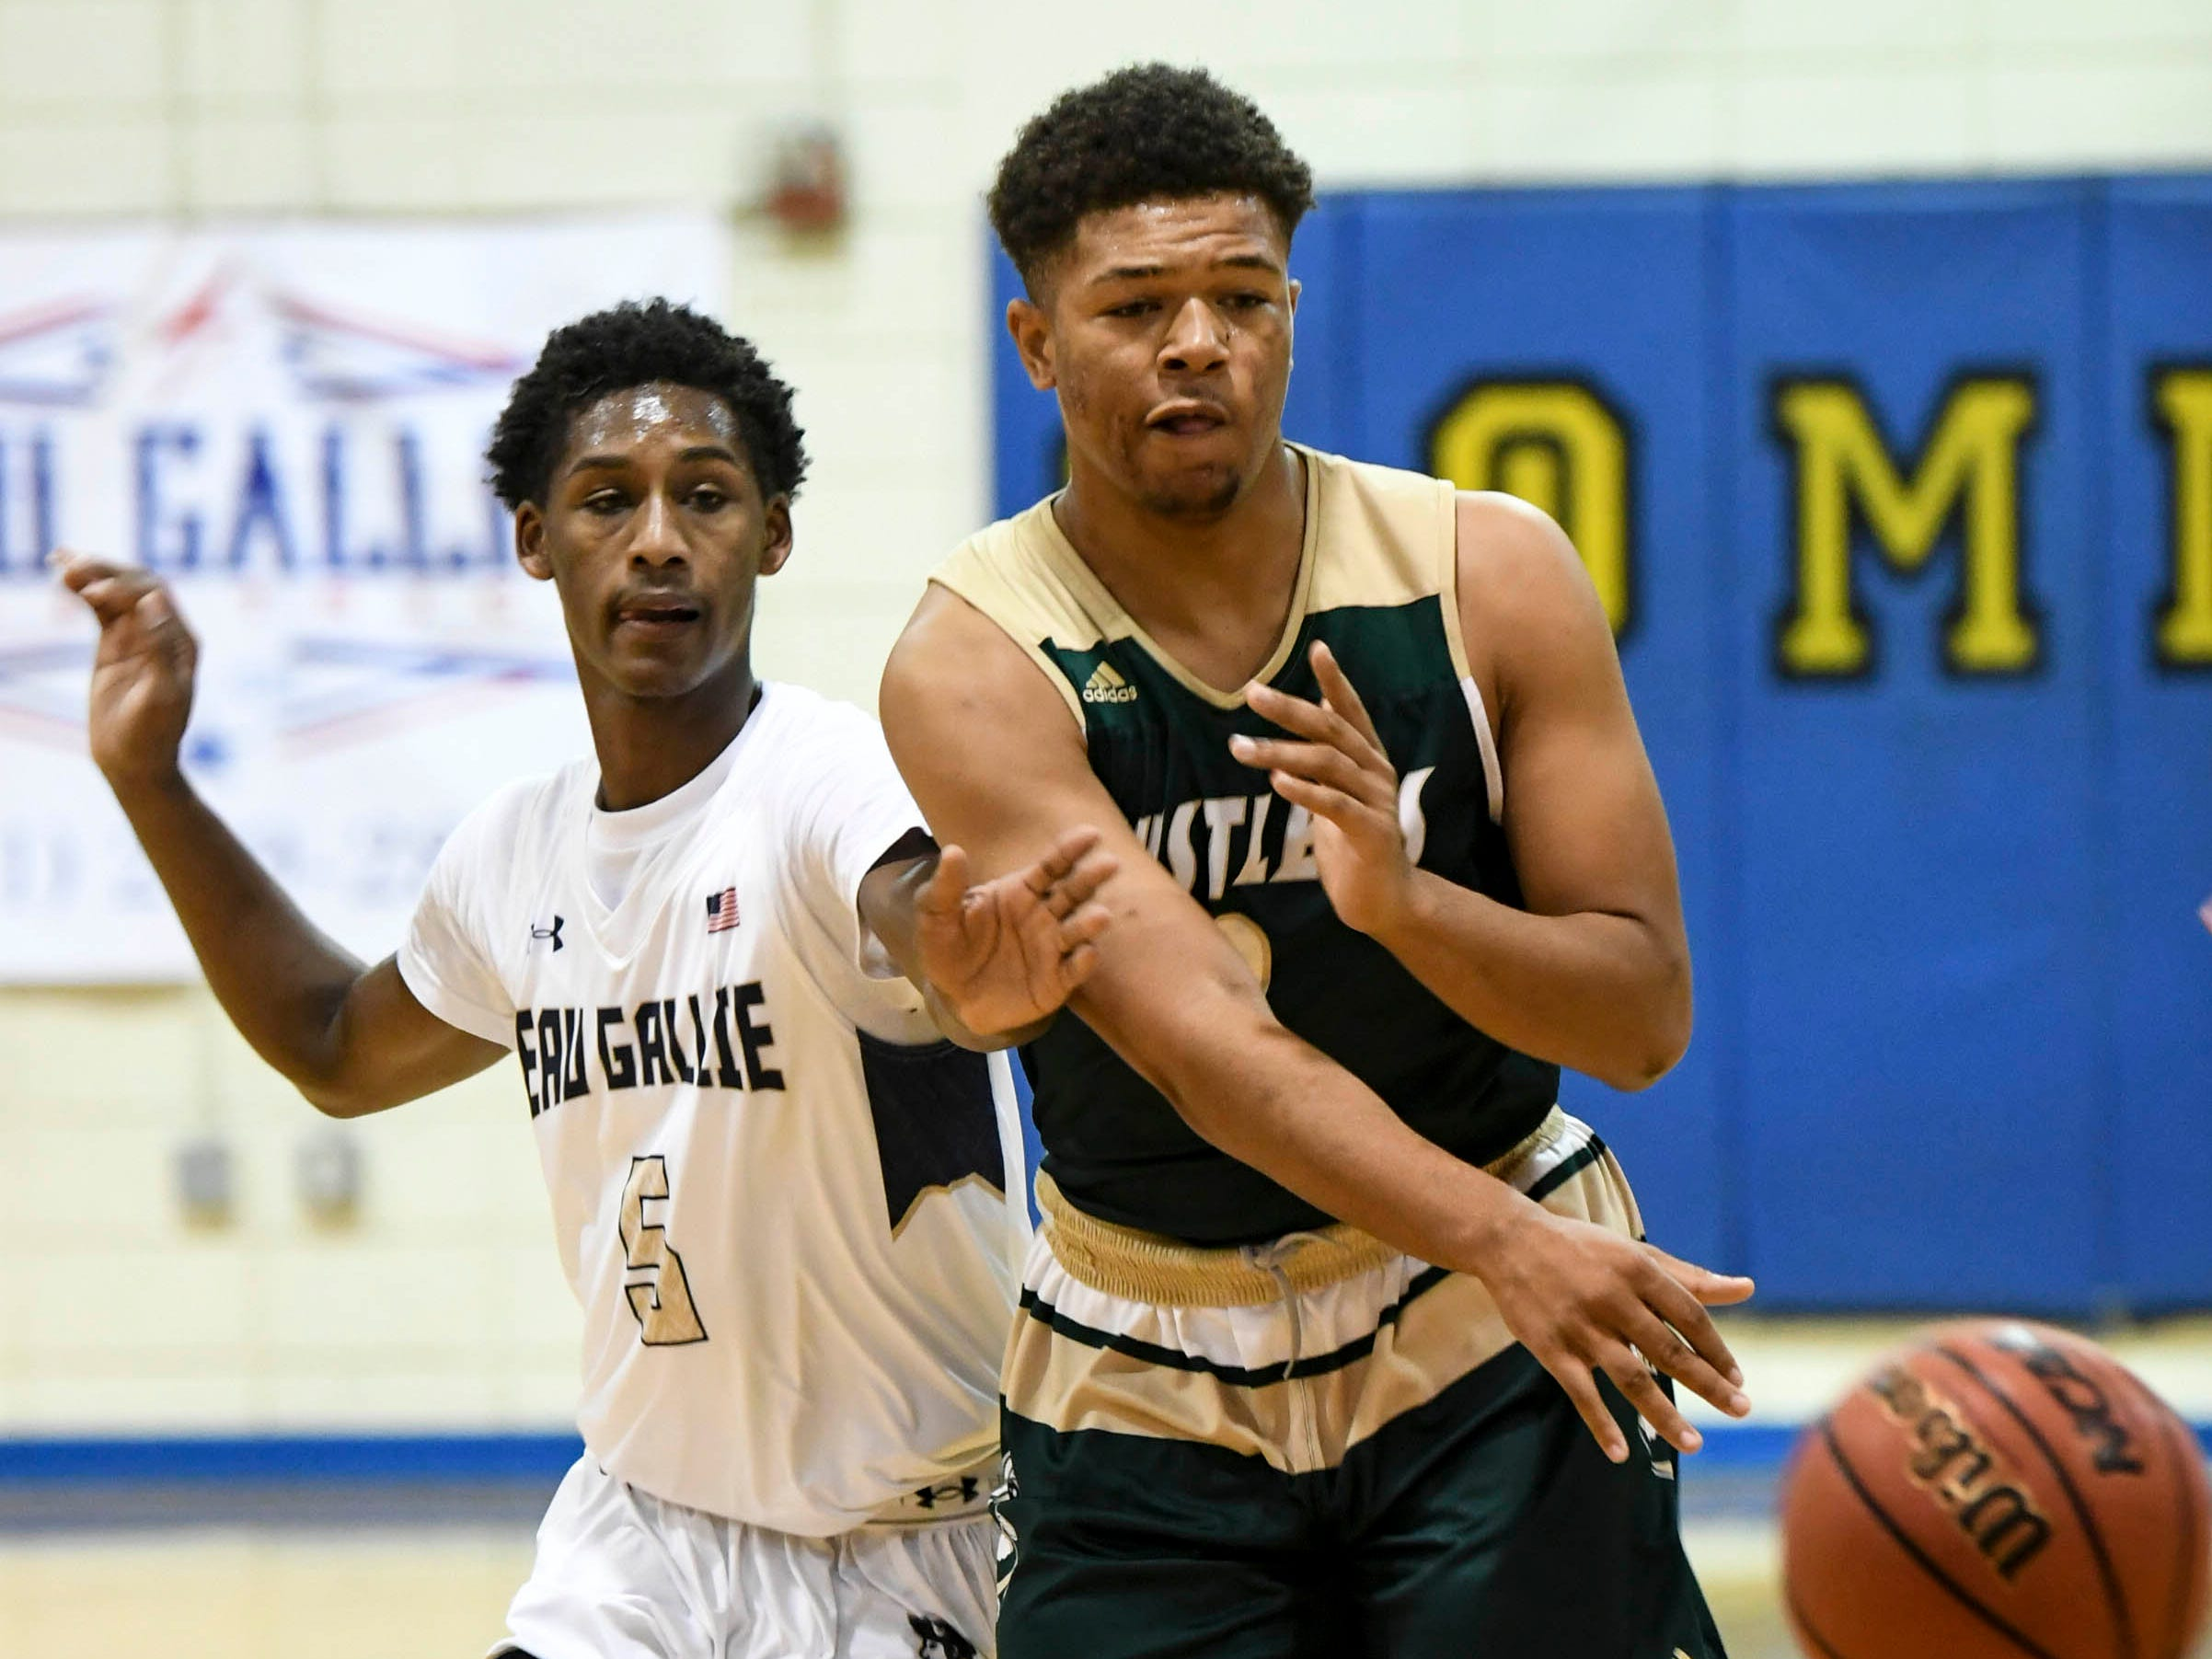 Ronaldo Ross of MCC passes away from Davon Sistrunk of Eau Gallie during Wednesday's game at Eau Gallie High